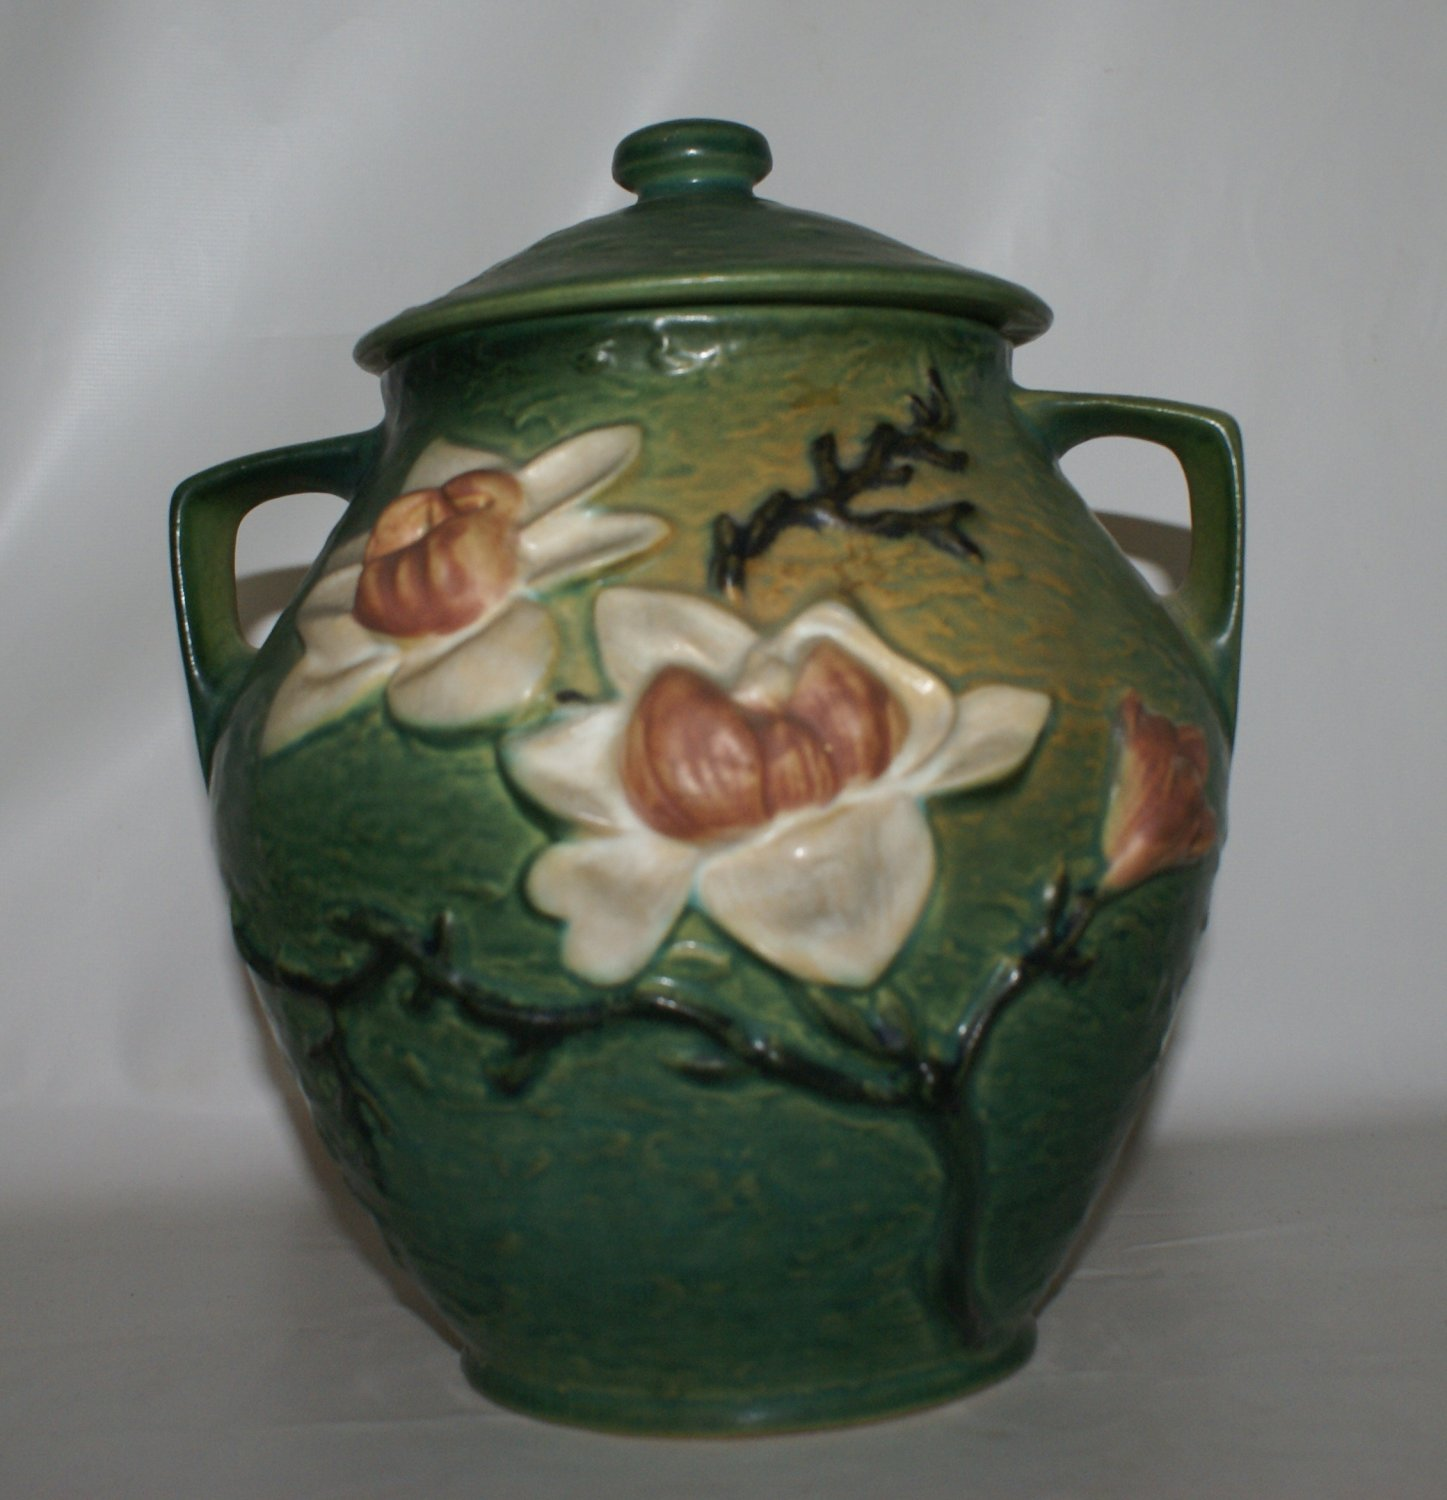 Roseville Teal Green Magnolia Cookie Jar